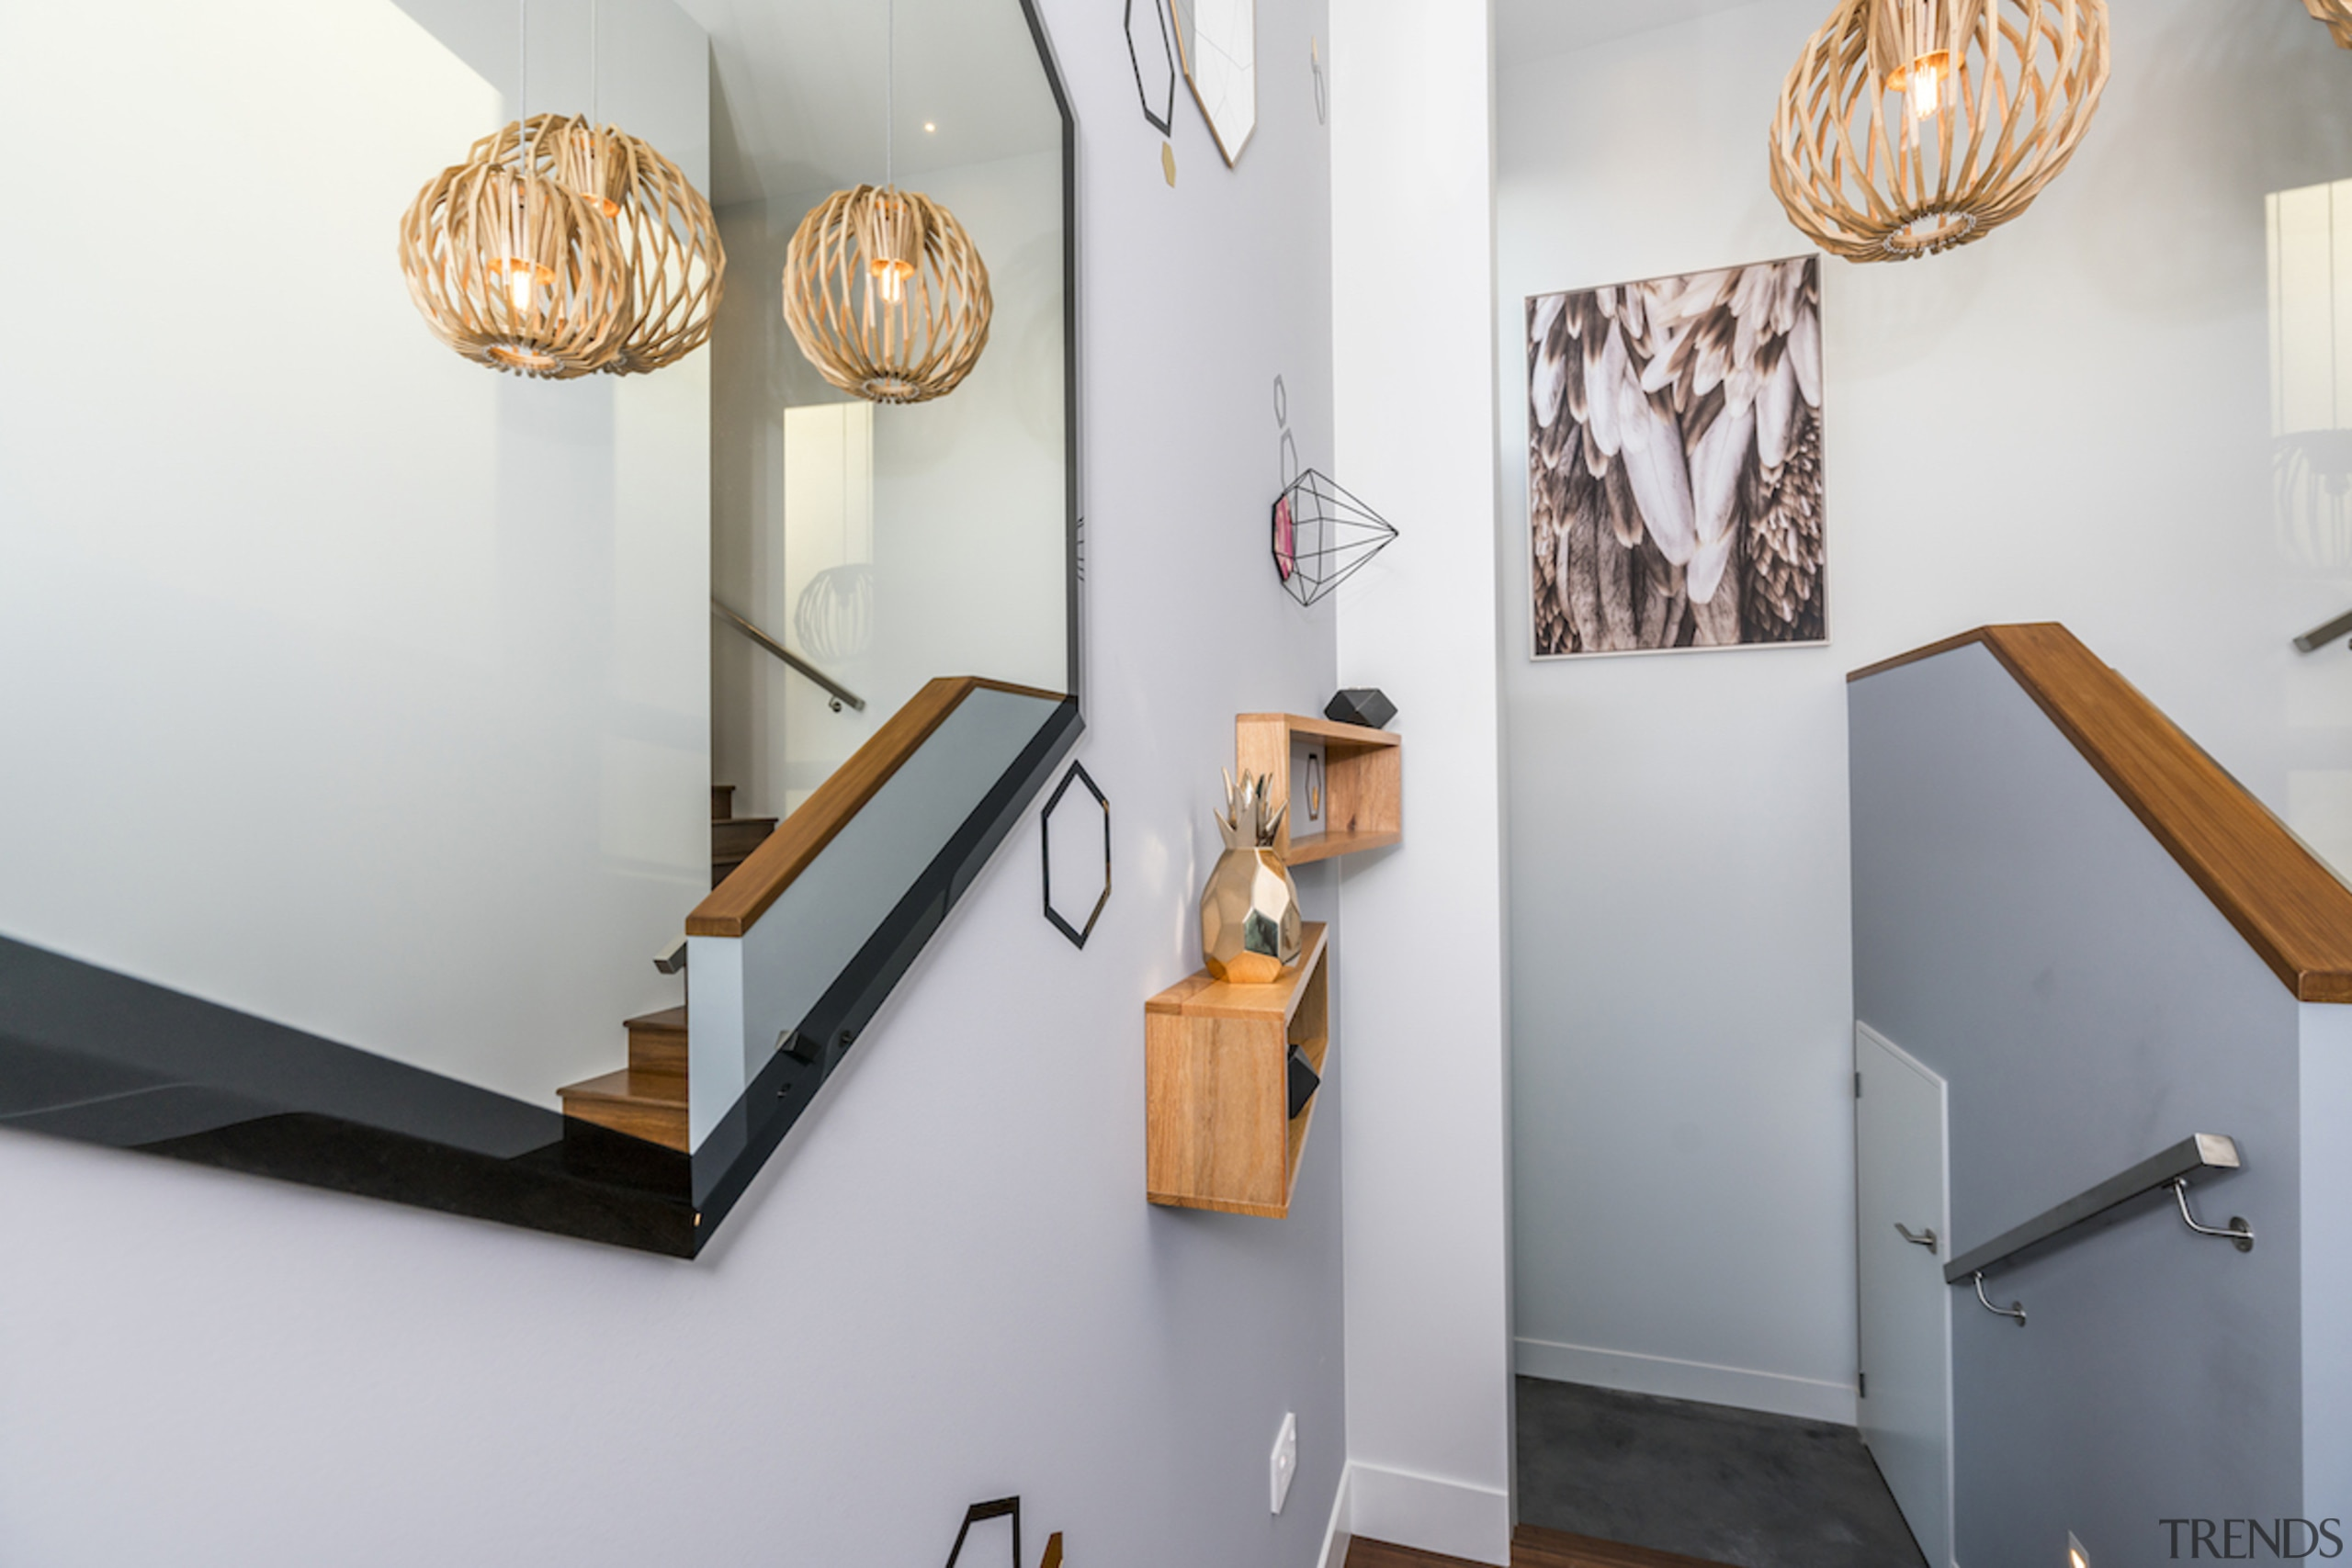 Stairway in sustainable home by Hybrid Homes & furniture, interior design, lamp, light fixture, lighting, shelf, gray, white